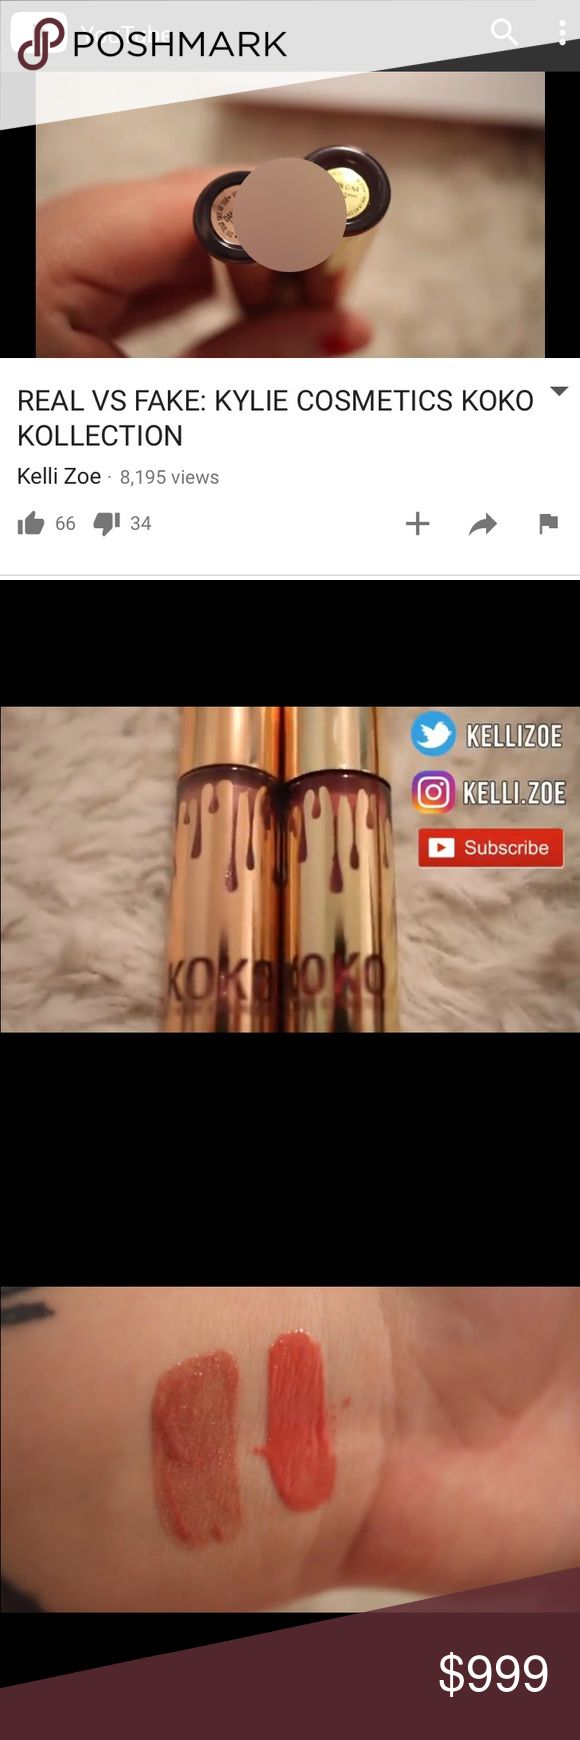 Spotting fake Kylie Holiday minis /Koko Kollection Please do you research! Ask sellers to post photos of the items reviewed in these videos! See my other listing of red flags. There are too many scammers sell cheap kits from China w/ harmful ingredients. If the seller doesn't respond to your questions, don't buy!! Google how to spot fakes in her other products too. There are lots of blogs/videos on this. To be extra savy, ask seller to have a piece of paper with their username IN the photo…